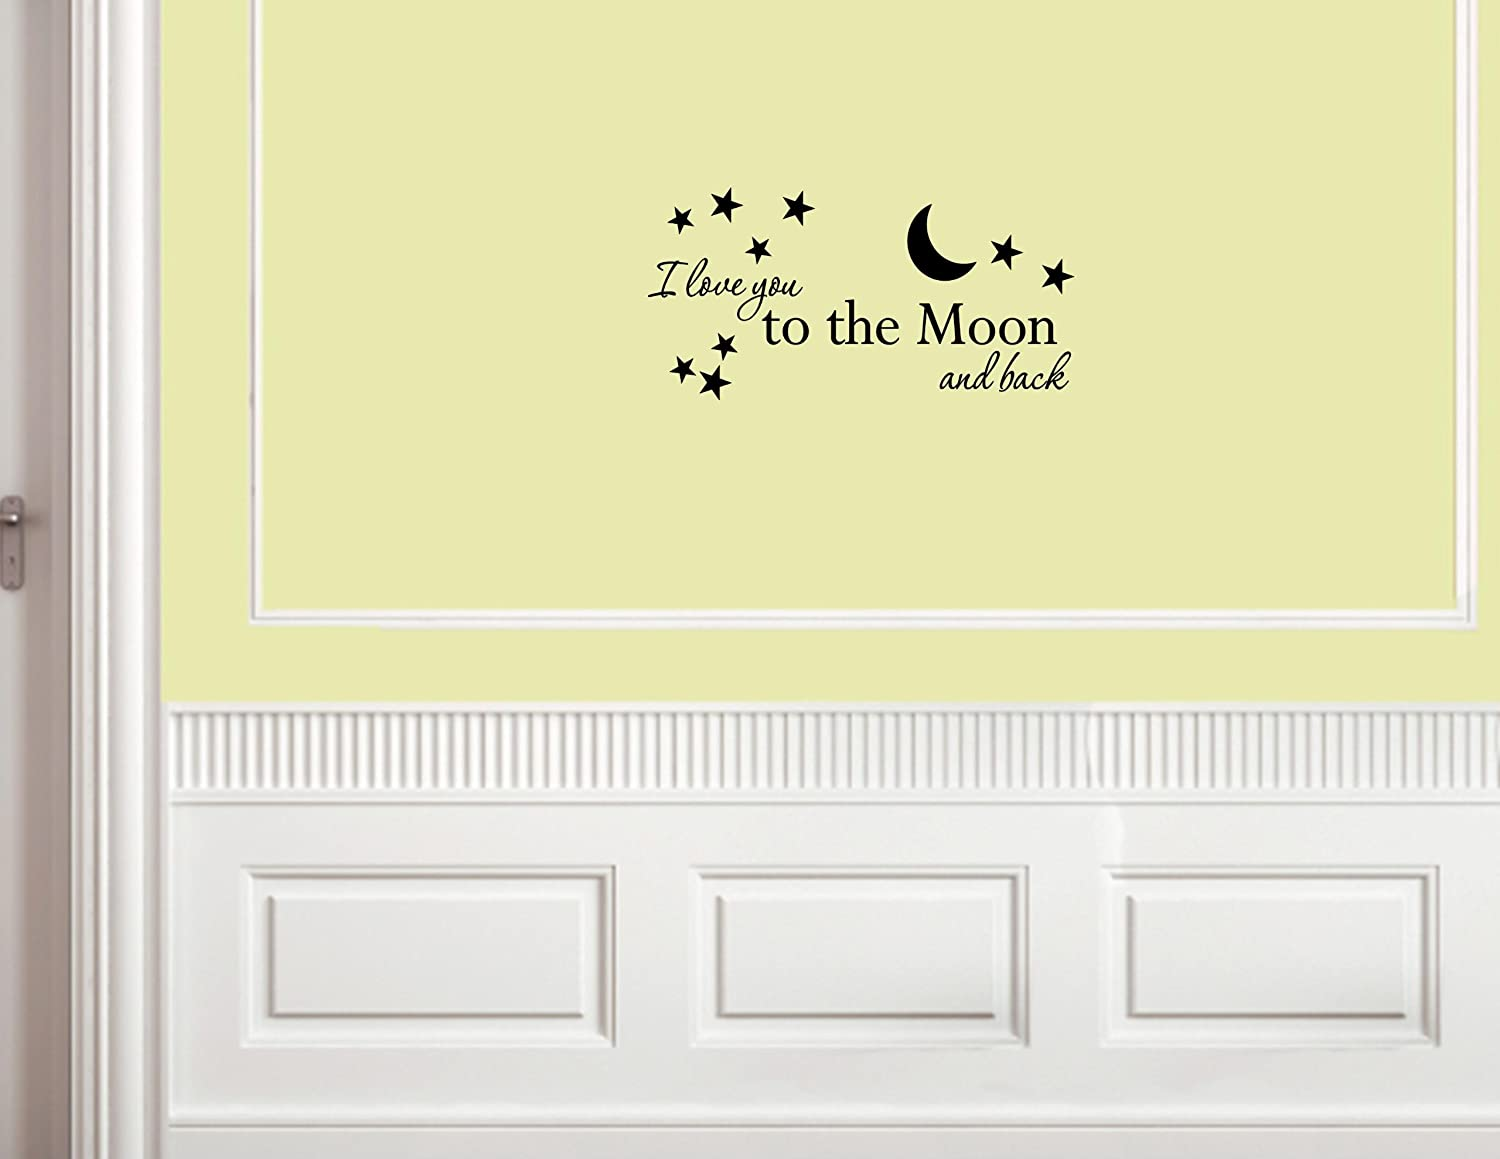 Awesome Quotes On Wall Art Images - The Wall Art Decorations ...